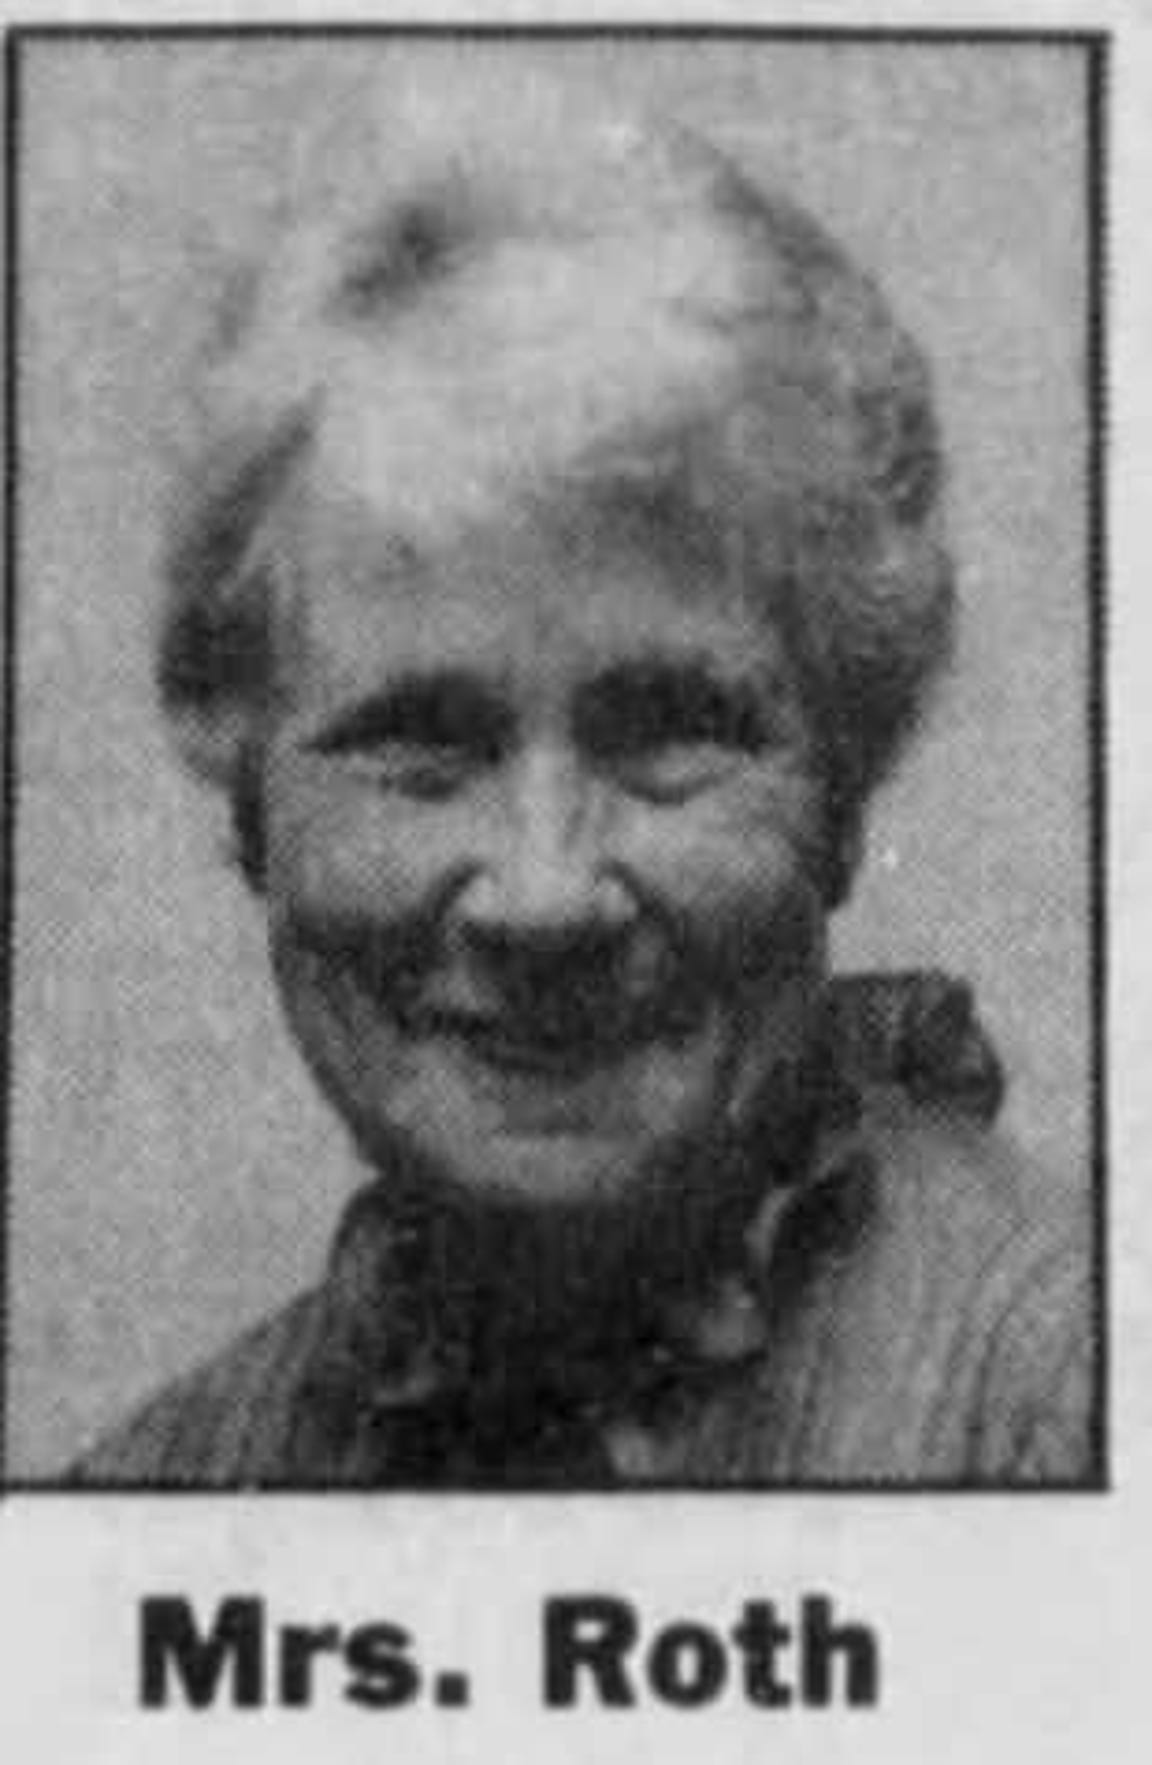 Freda Roth, Sharon Elliott's biological mother.